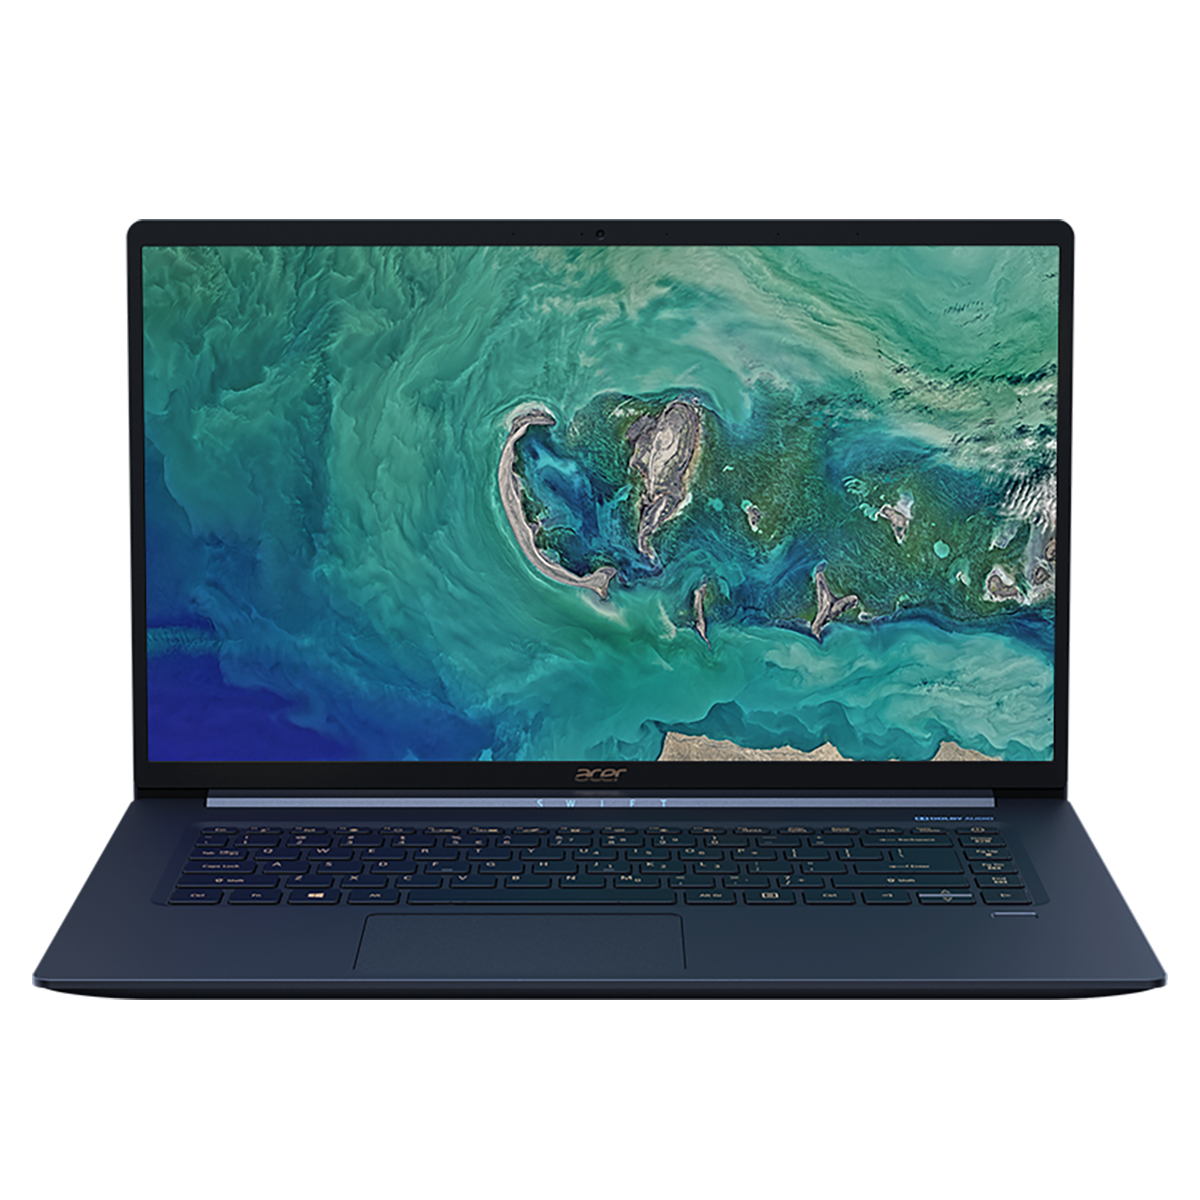 Acer Swift 5 is the World's Lightest 15-inch Notebook